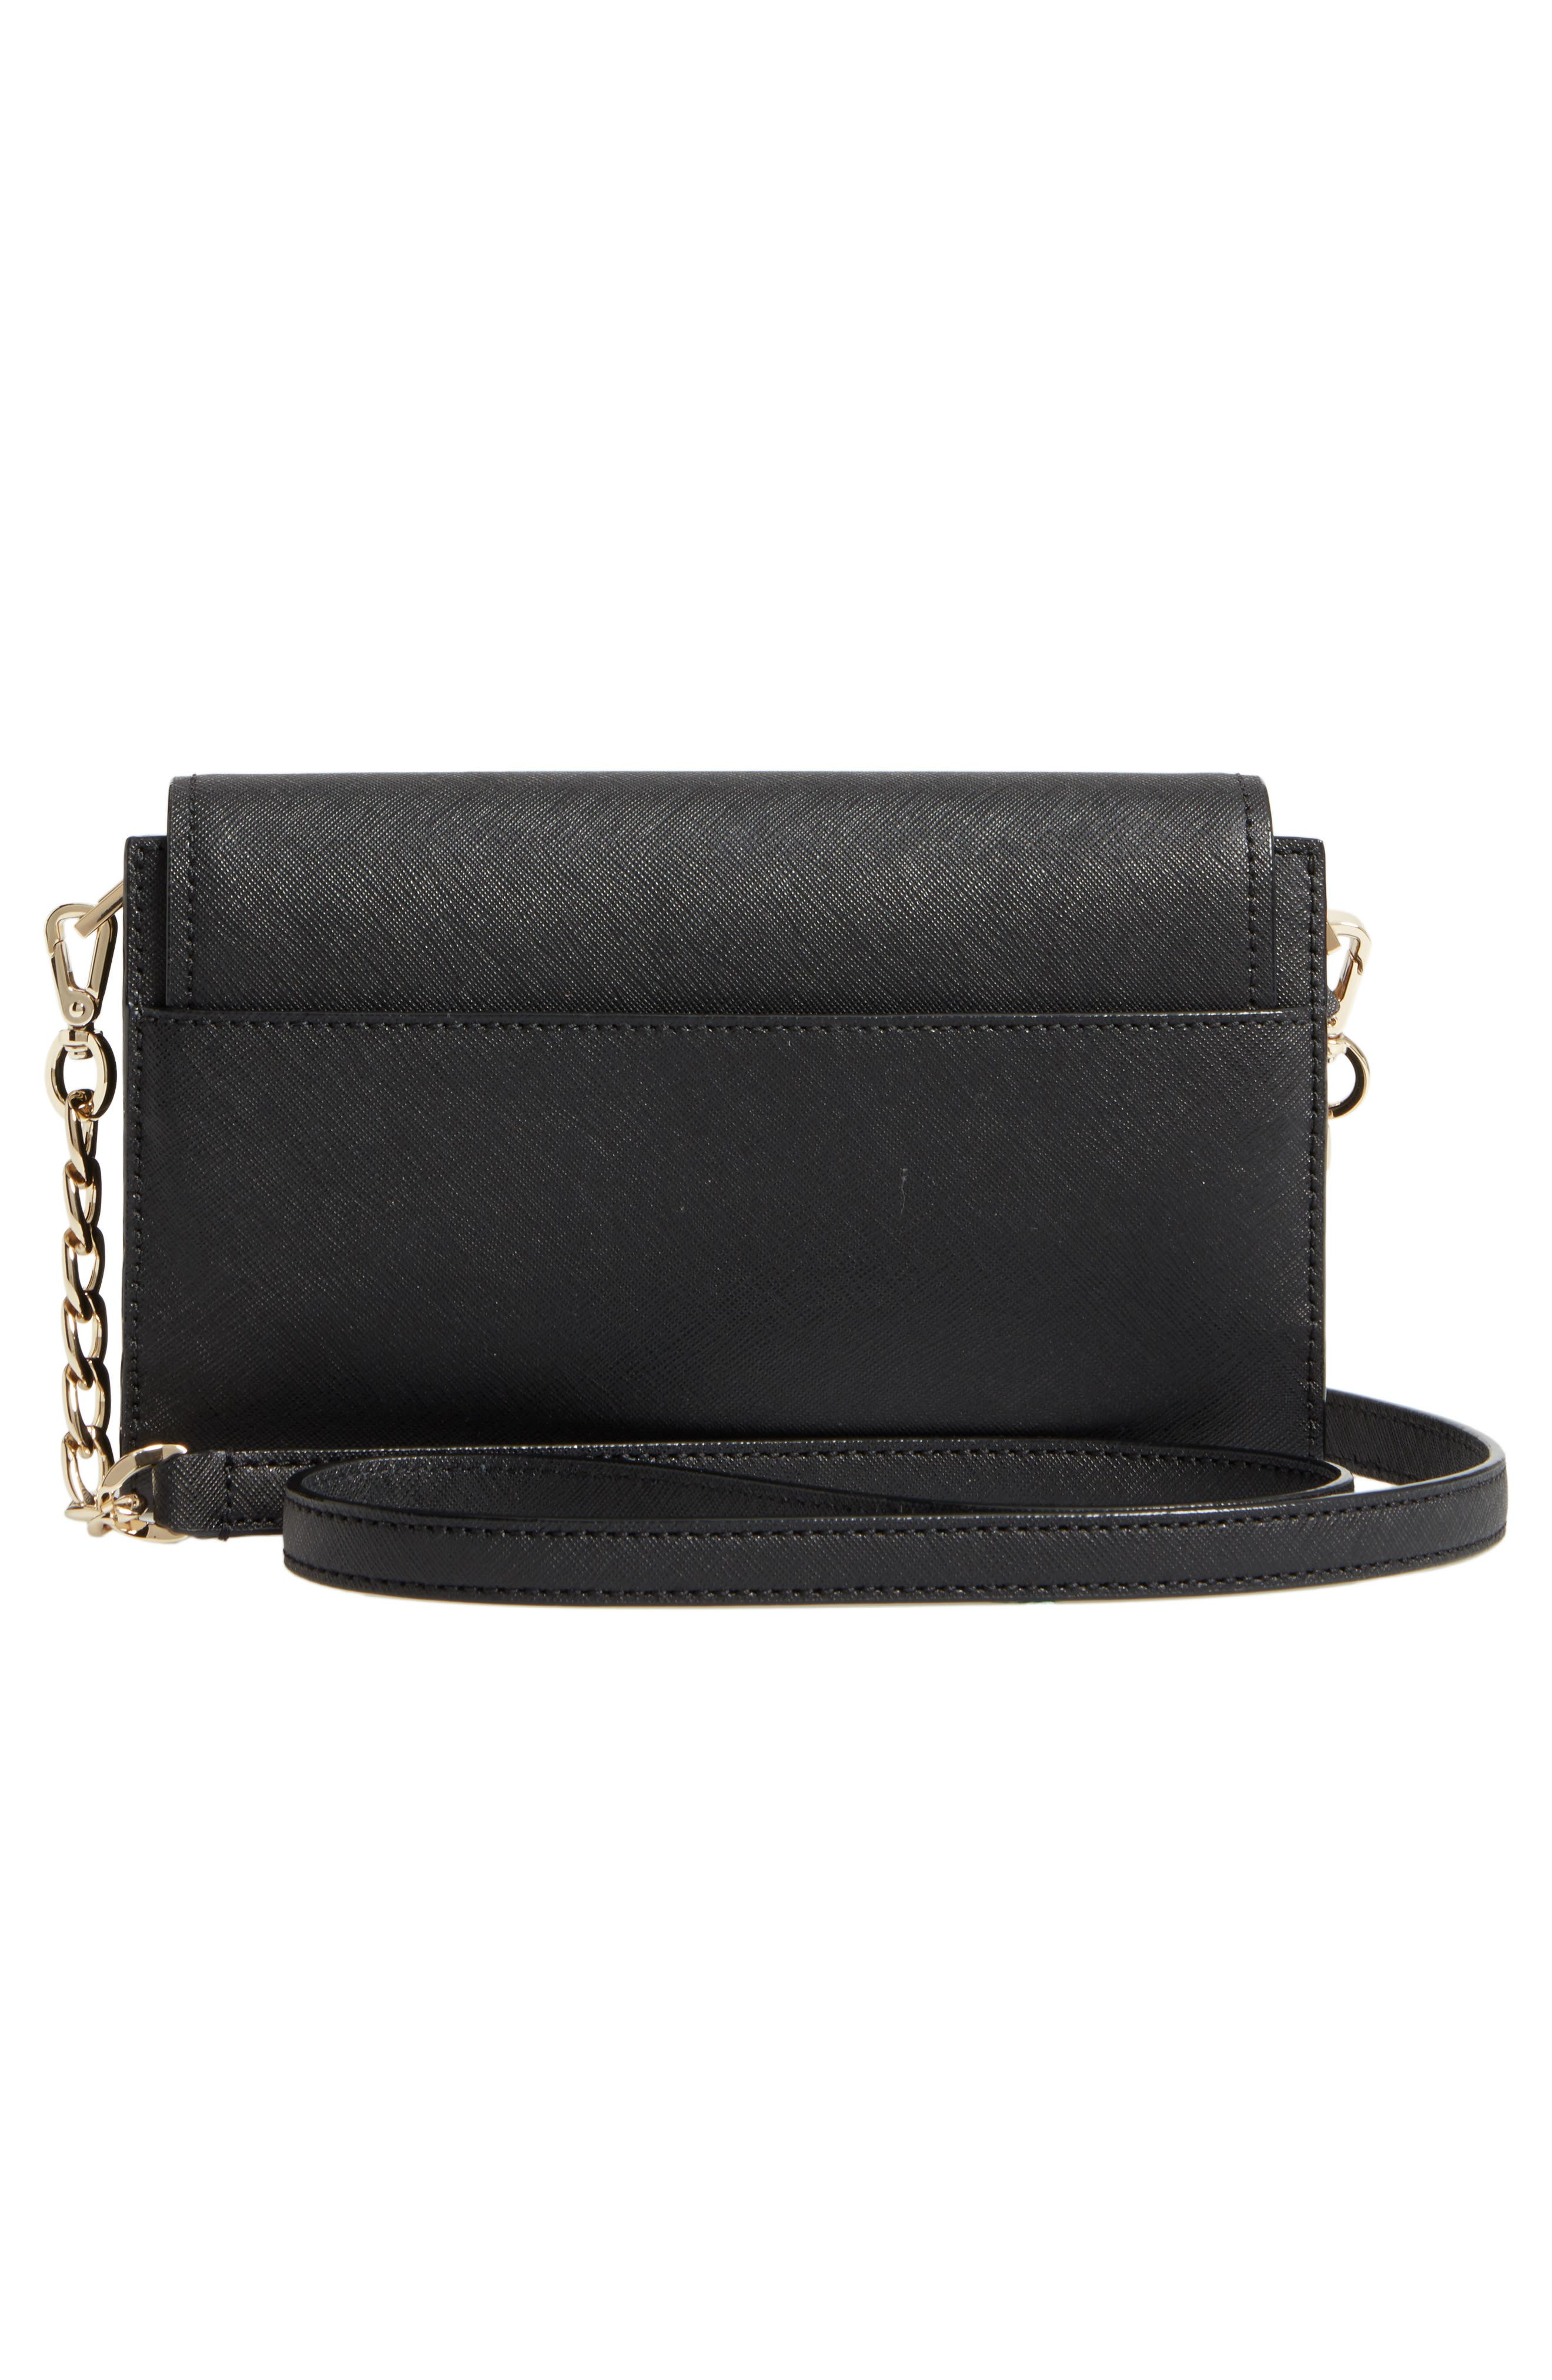 make it mine - camila leather clutch,                             Alternate thumbnail 5, color,